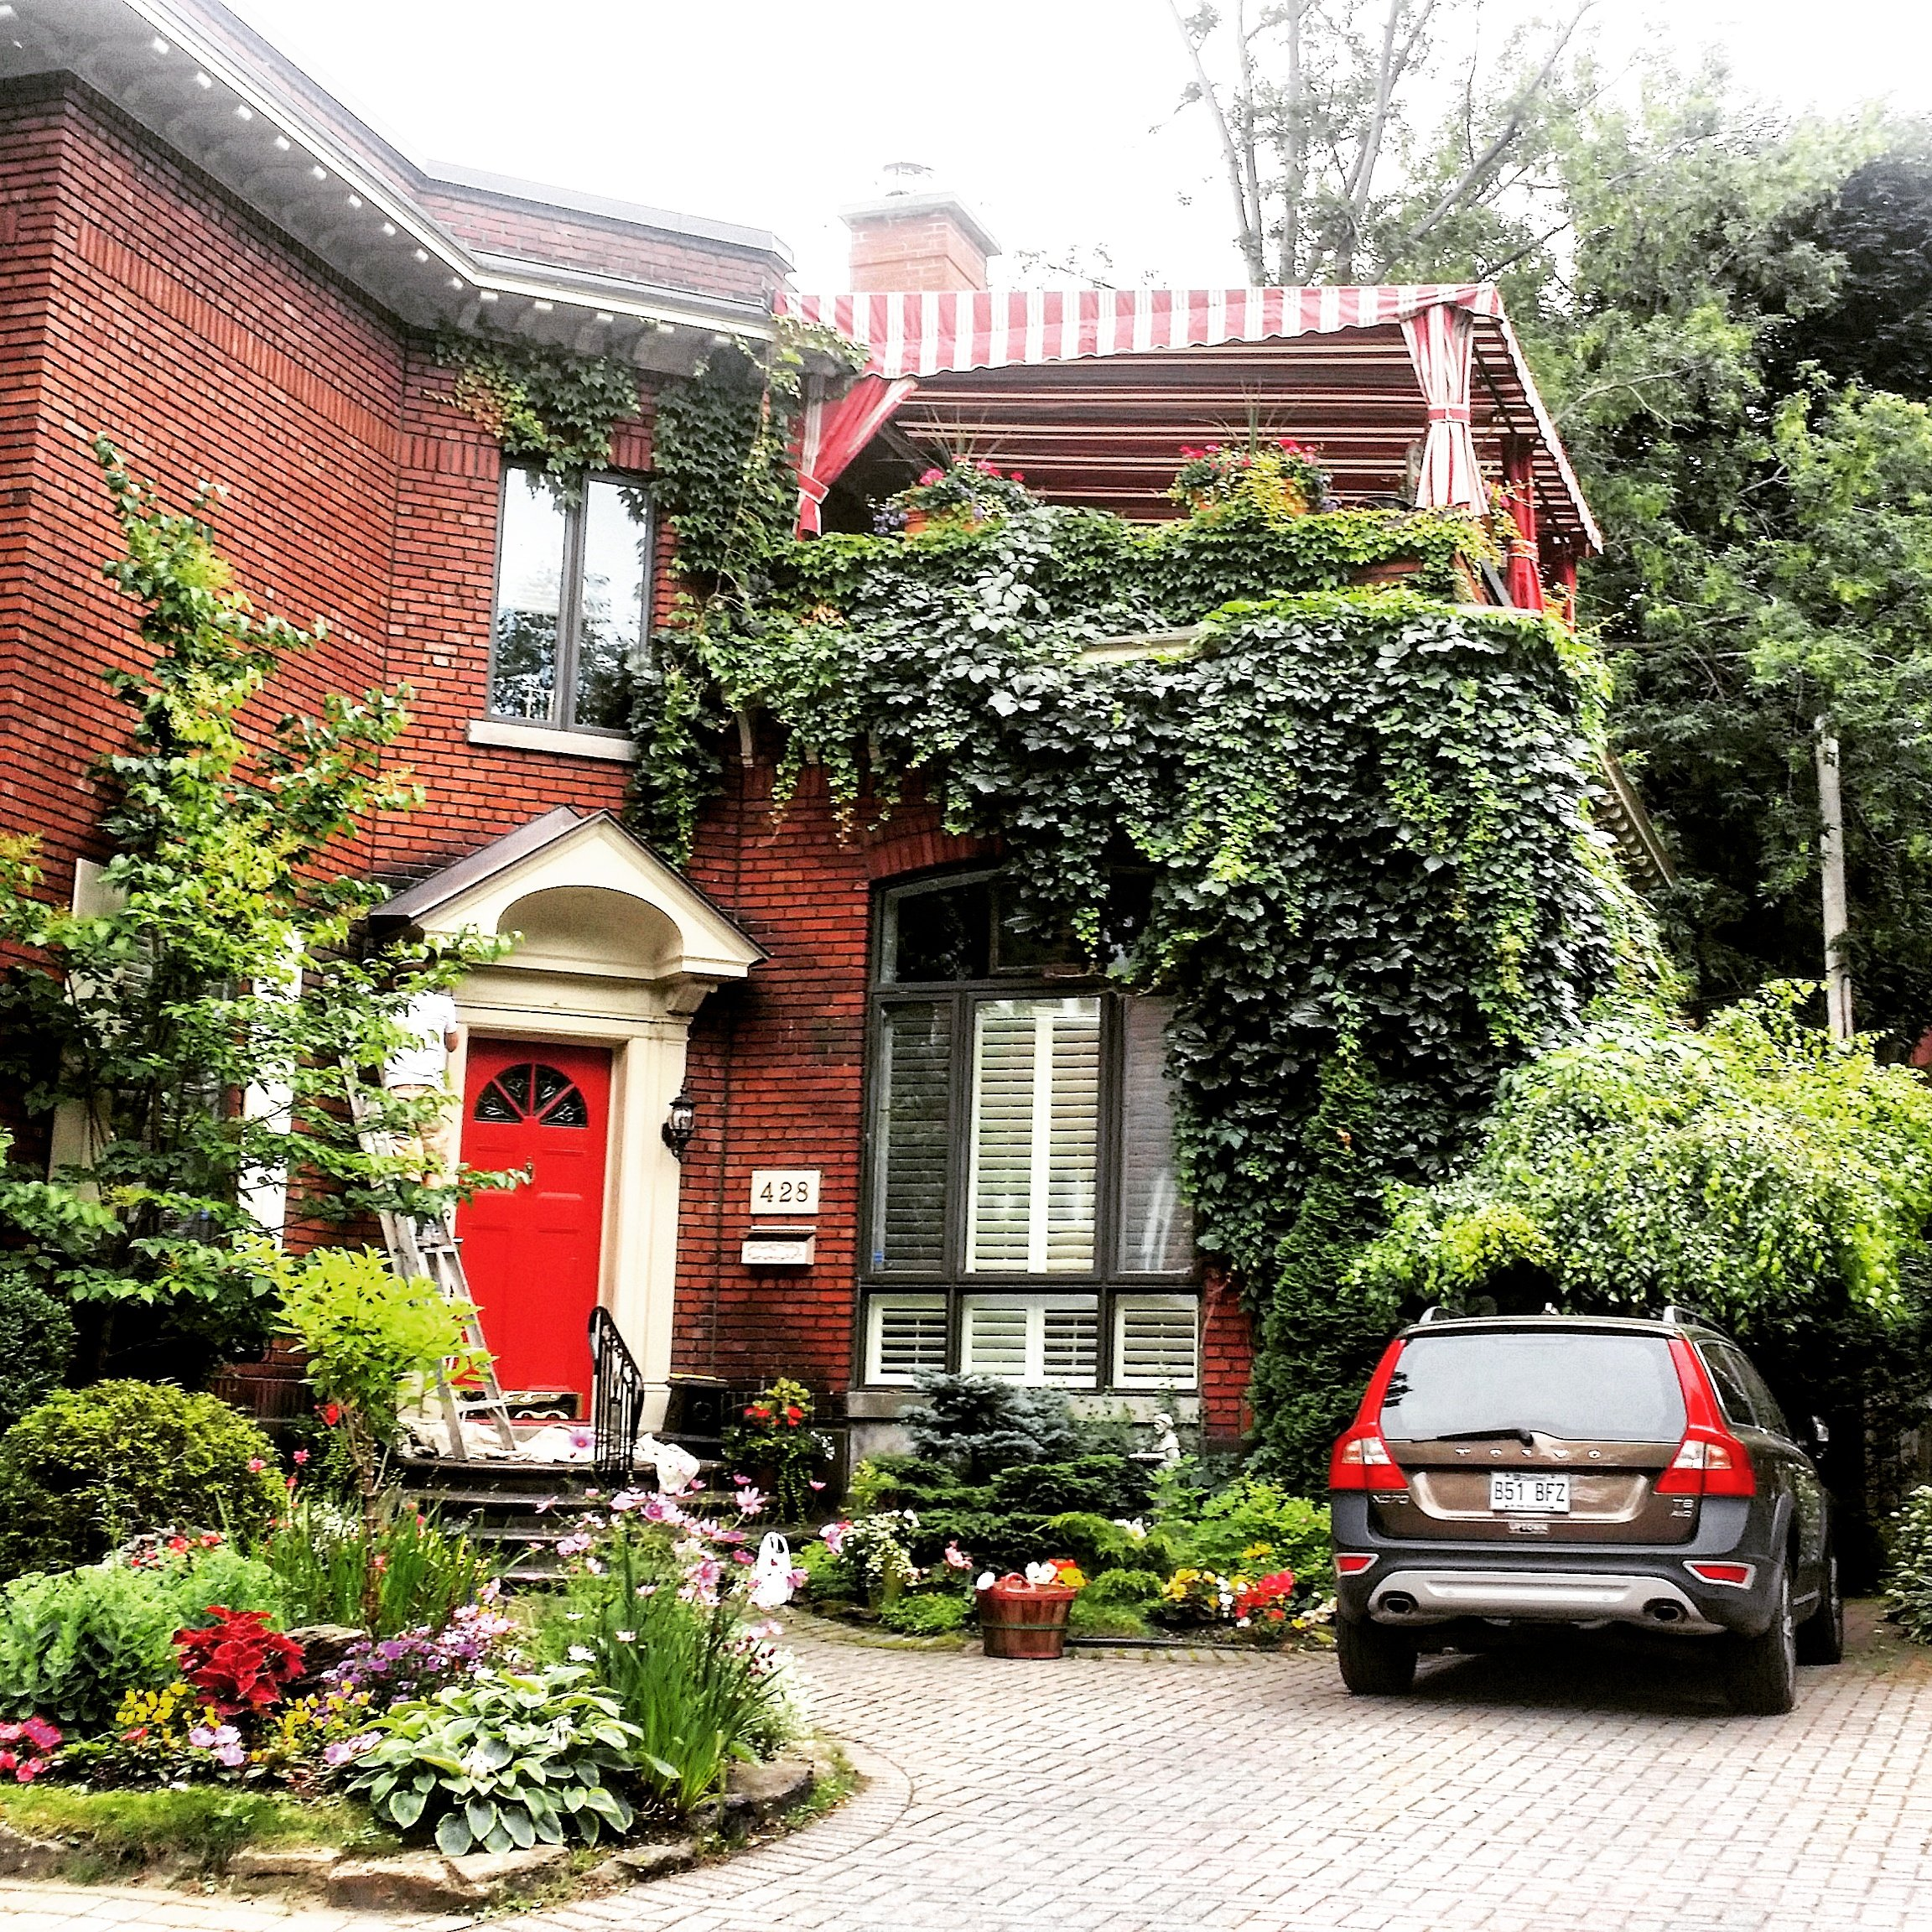 It's Official Canada's New Hot Housing Market Is Montreal